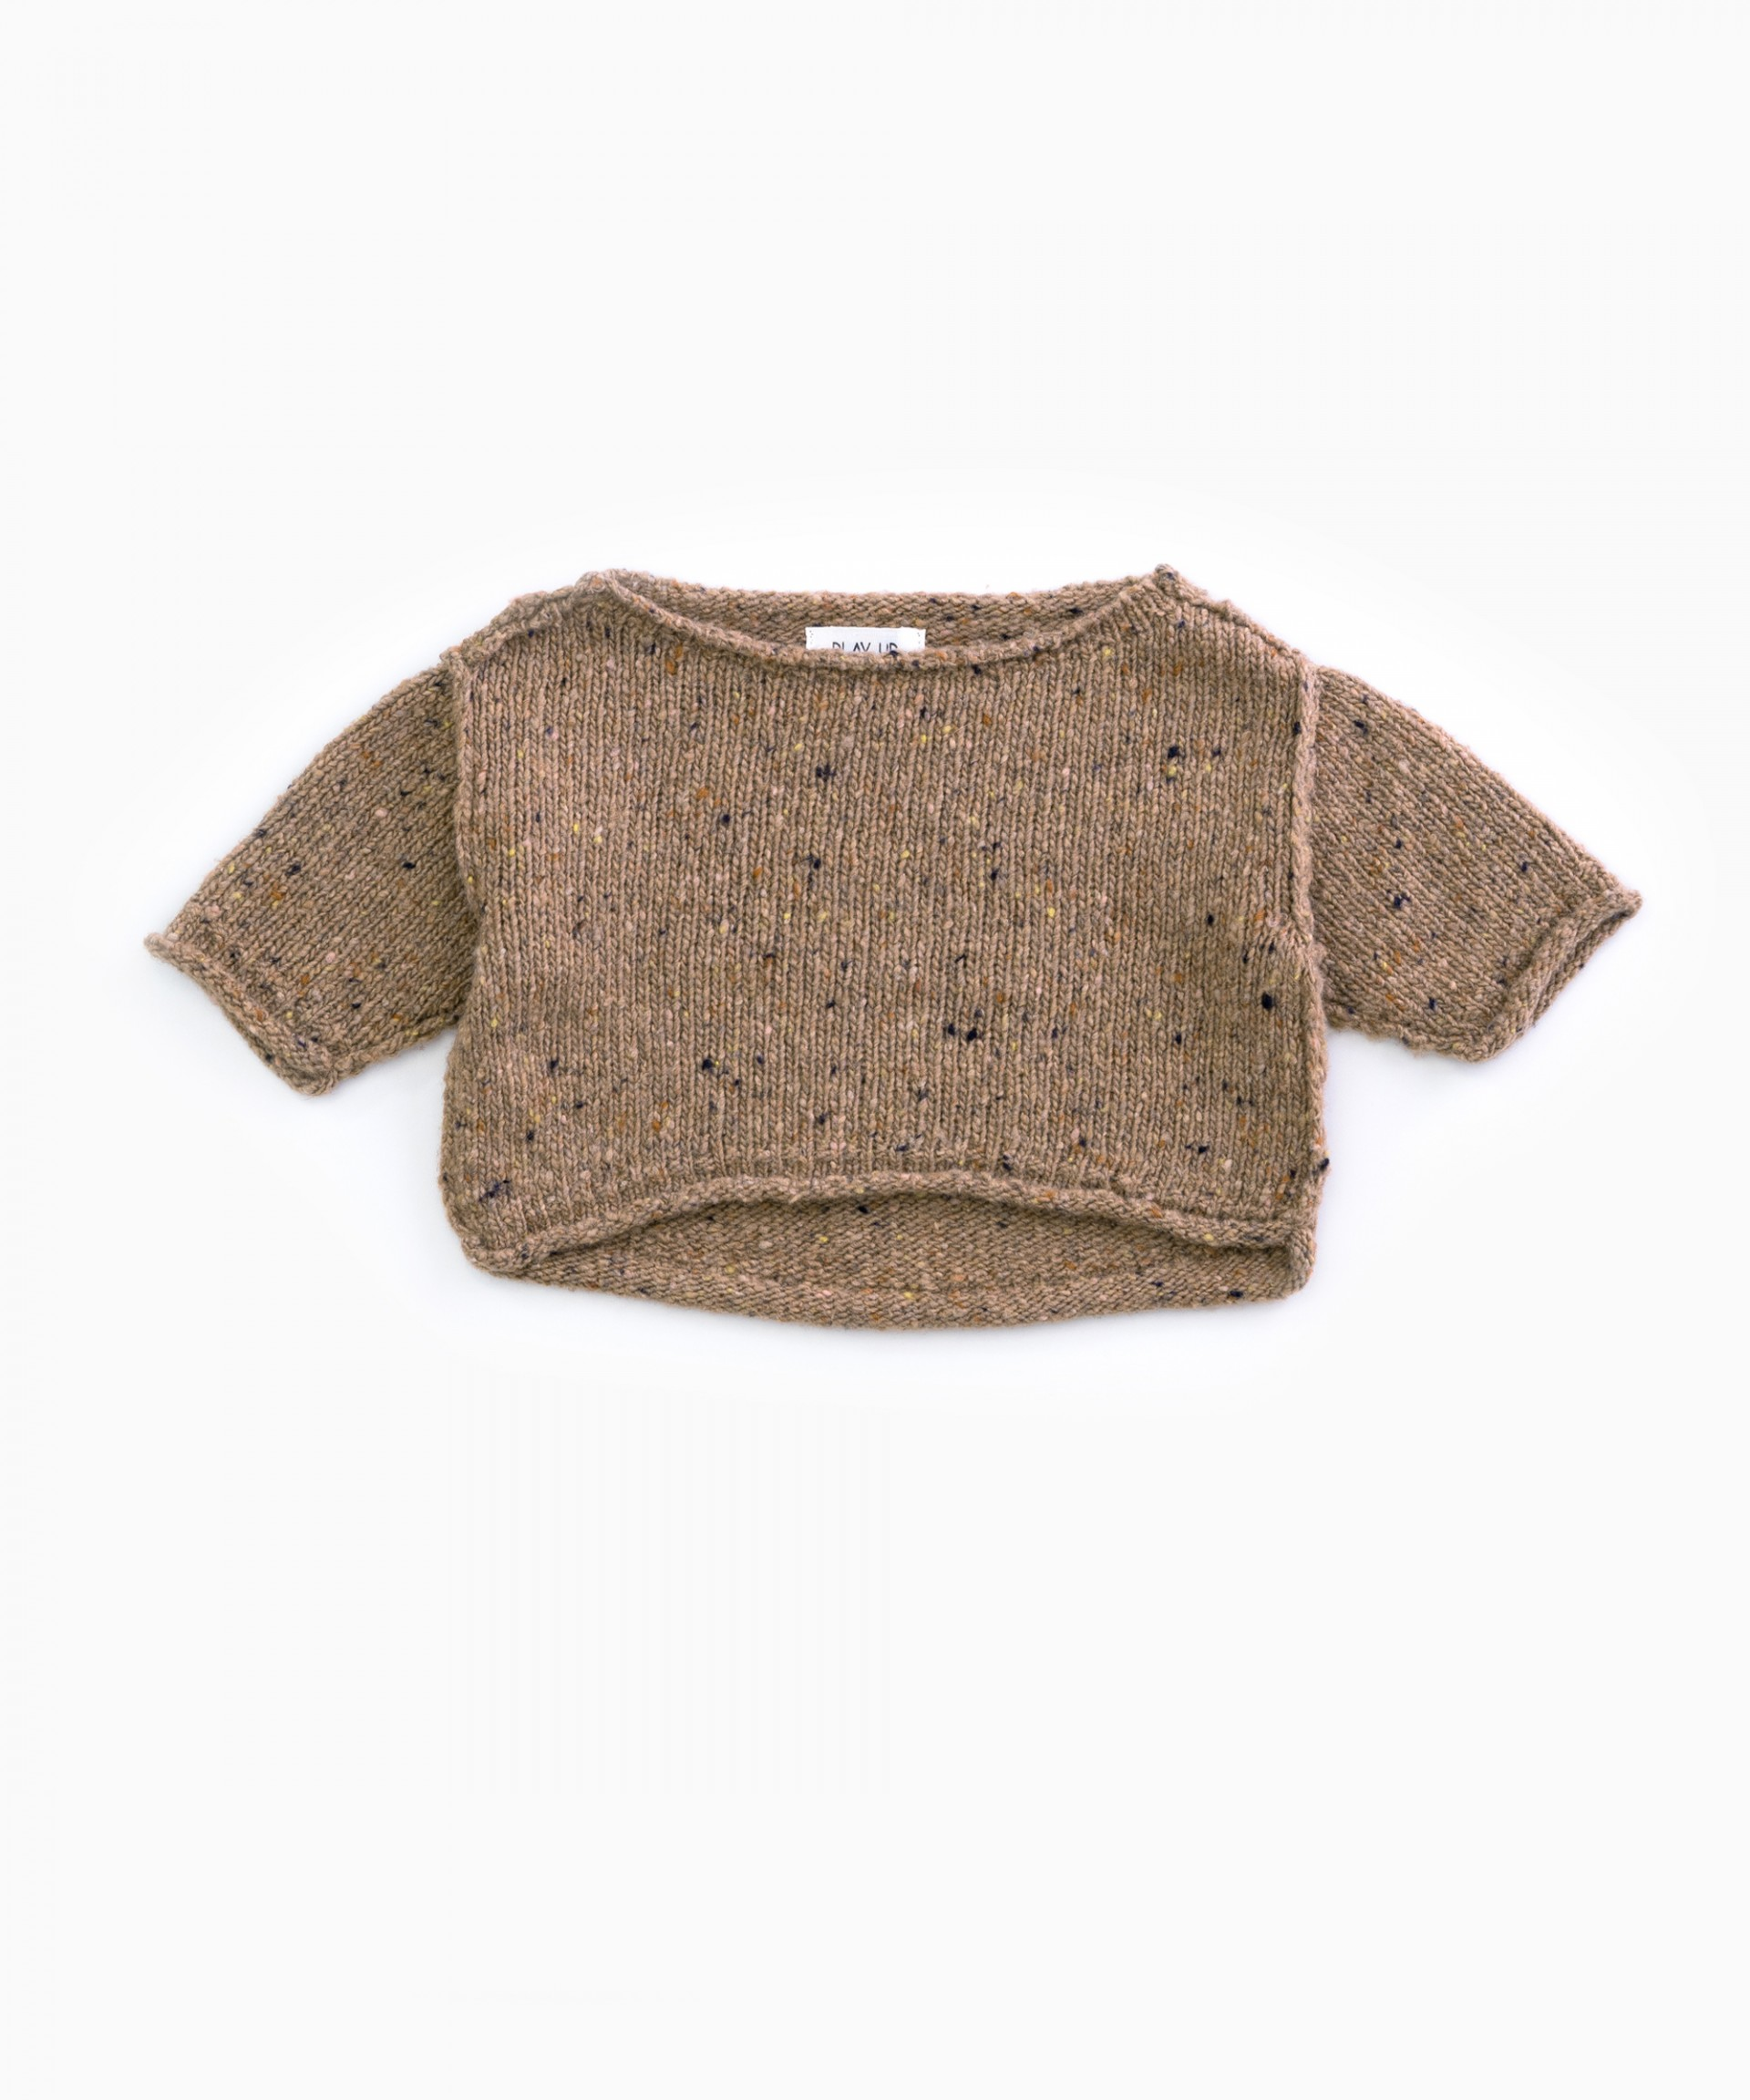 Knitted jersey with recycled fibres | Woodwork